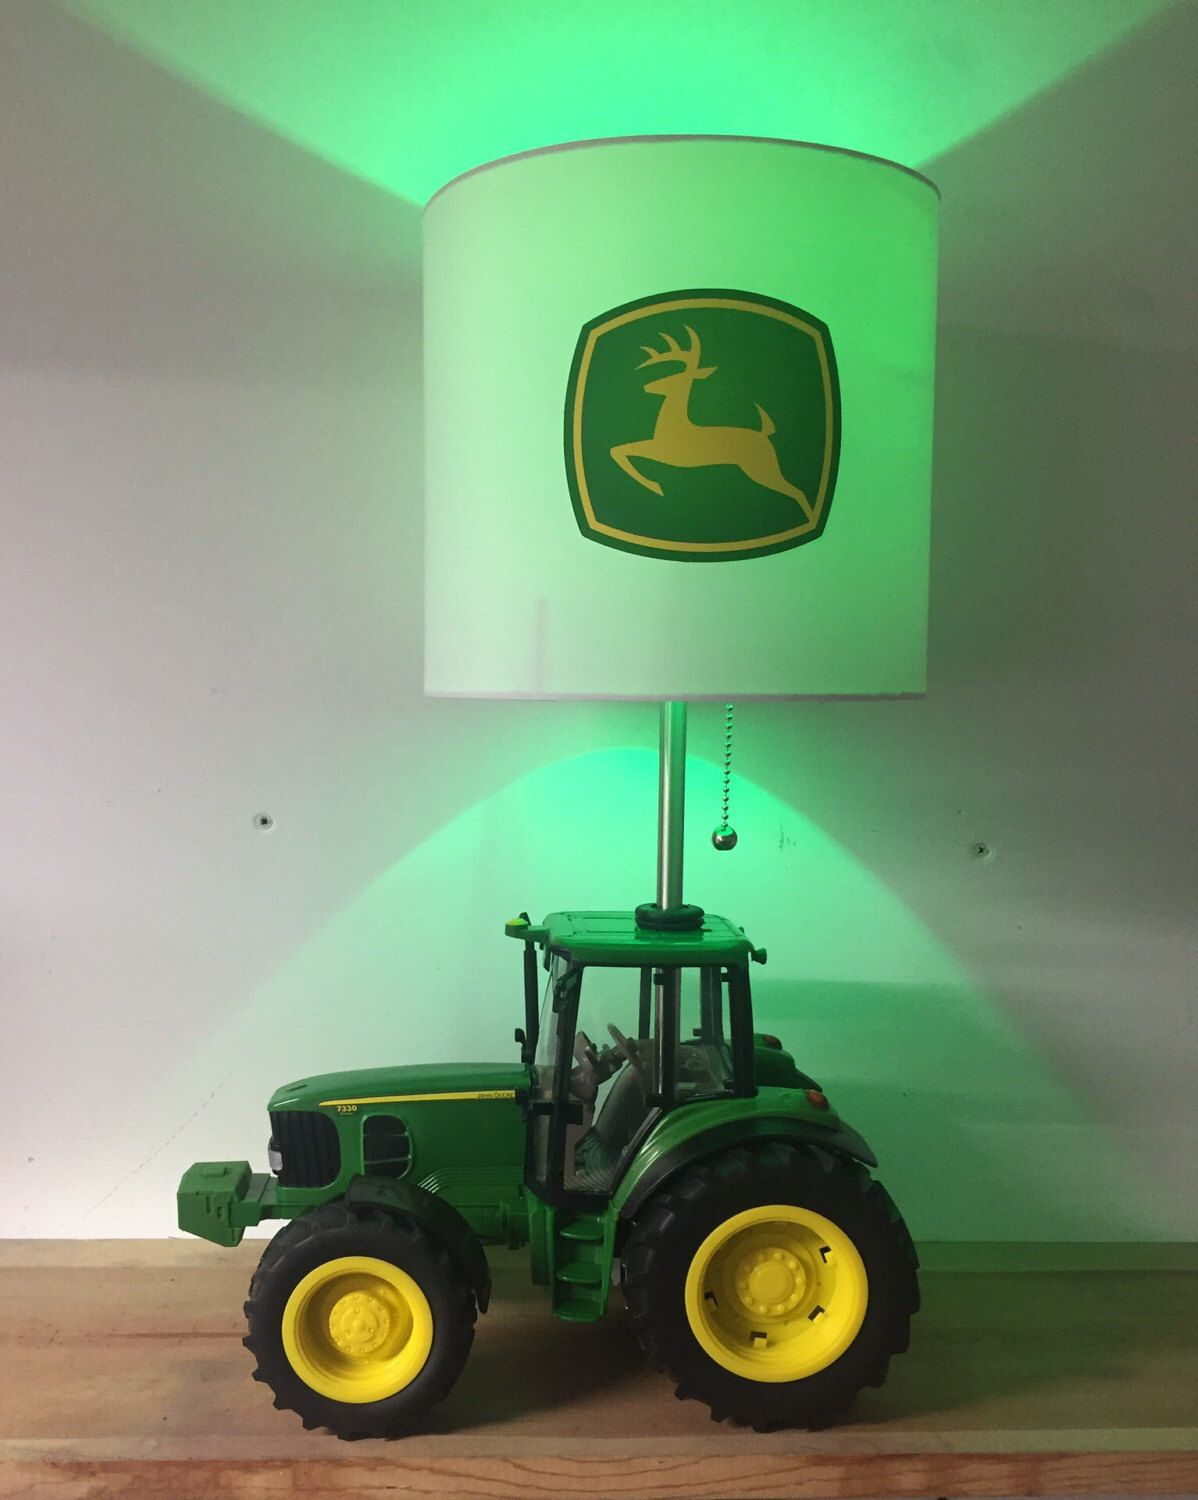 John deere tractor lamp farm lamp green yellow tractor light john deere tractor lamp farm lamp green yellow tractor light table lamp aloadofball